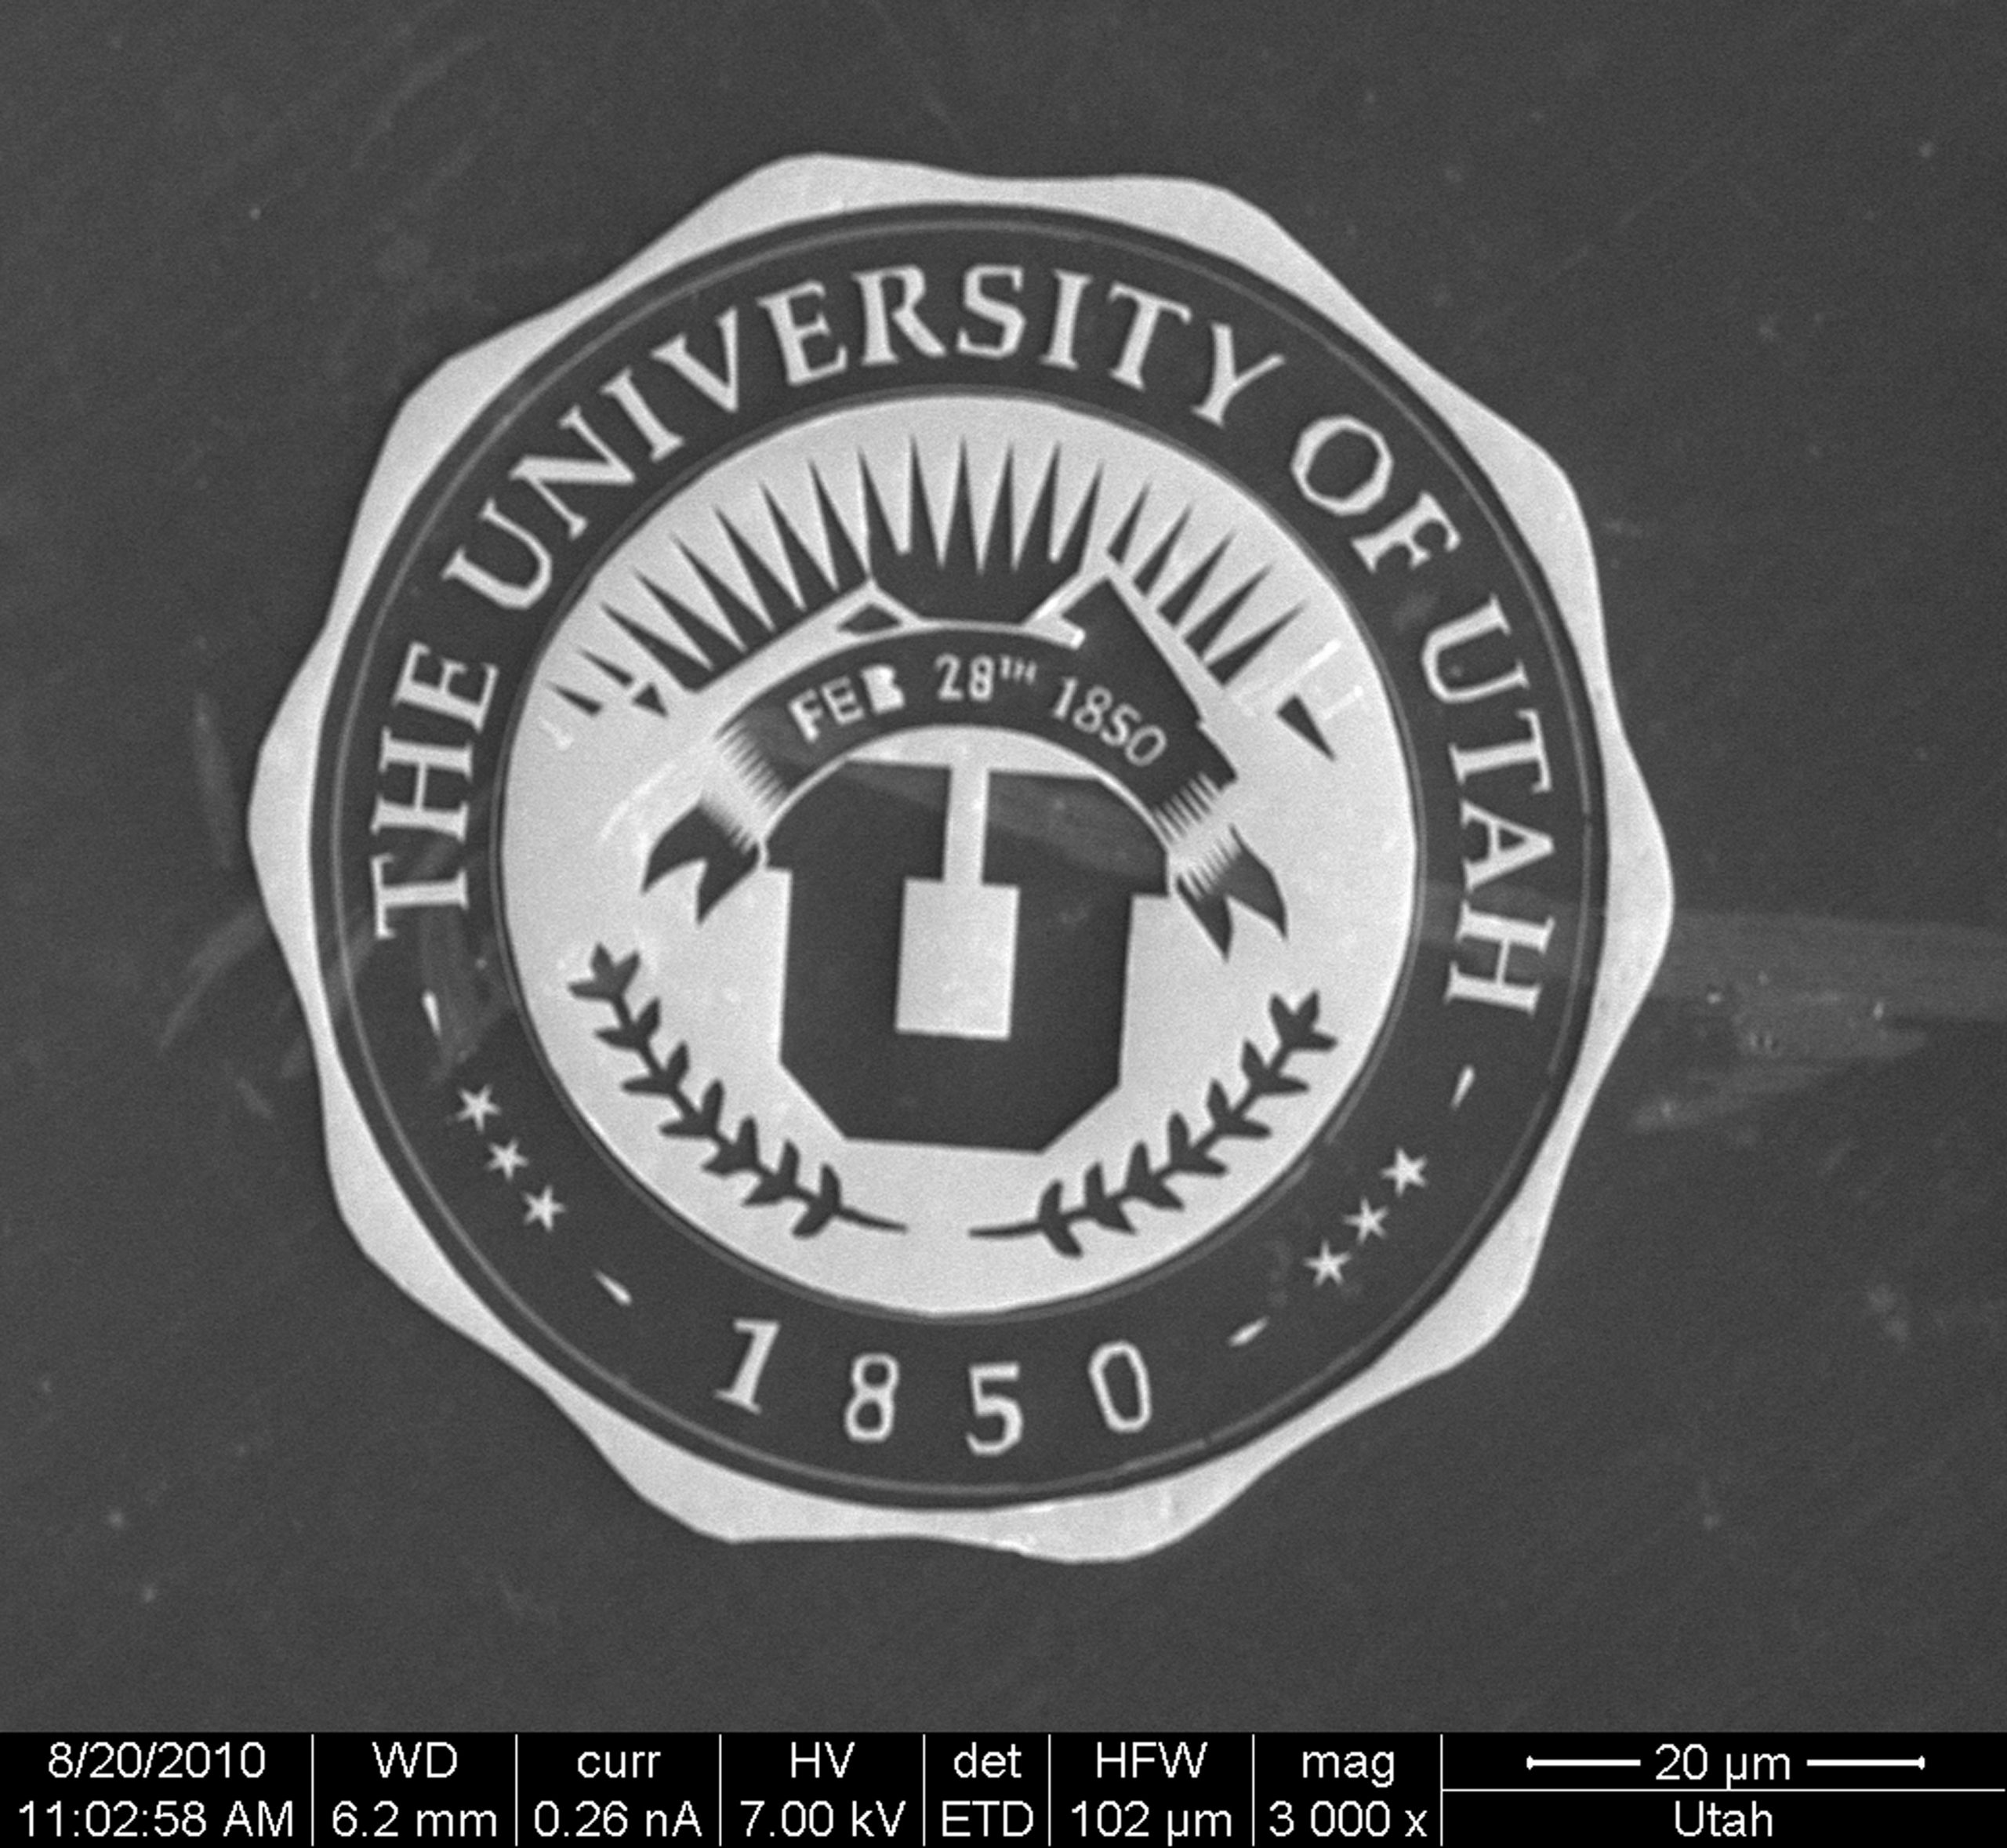 This electron microscope image shows a gilded University of Utah medallion -- one of several official symbols and logos for the university -- that measures only 70 microns across, which is about the diameter of a single blonde human hair. The medallion is magnified 3,000 times in this image. The gold-covered parts of the medallion appear white, while the silicon background is dark. The medallion was made using a process called electron-beam lithography. It was created by Randy Polson, a senior optical engineer at the university's Department of Physics and Astronomy, as part of his job adjusting the microscope for use by researchers and private businesses.